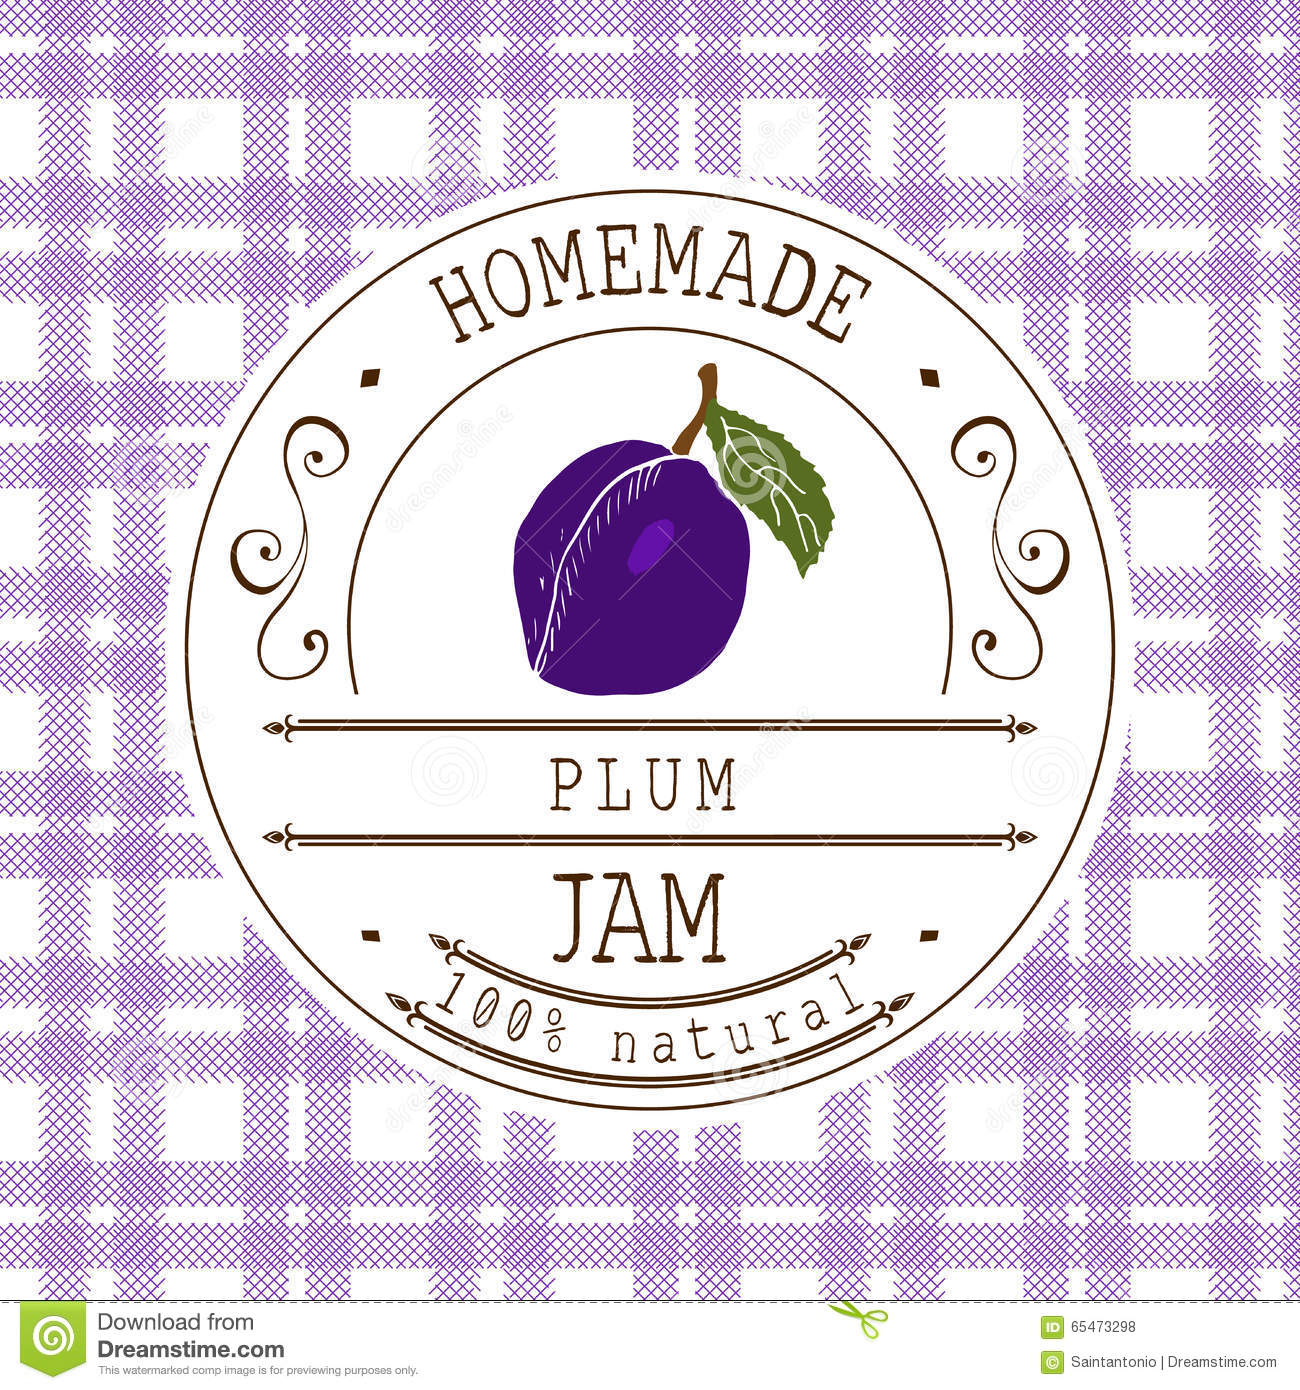 Jam Label Design Template For Plum Dessert Product With